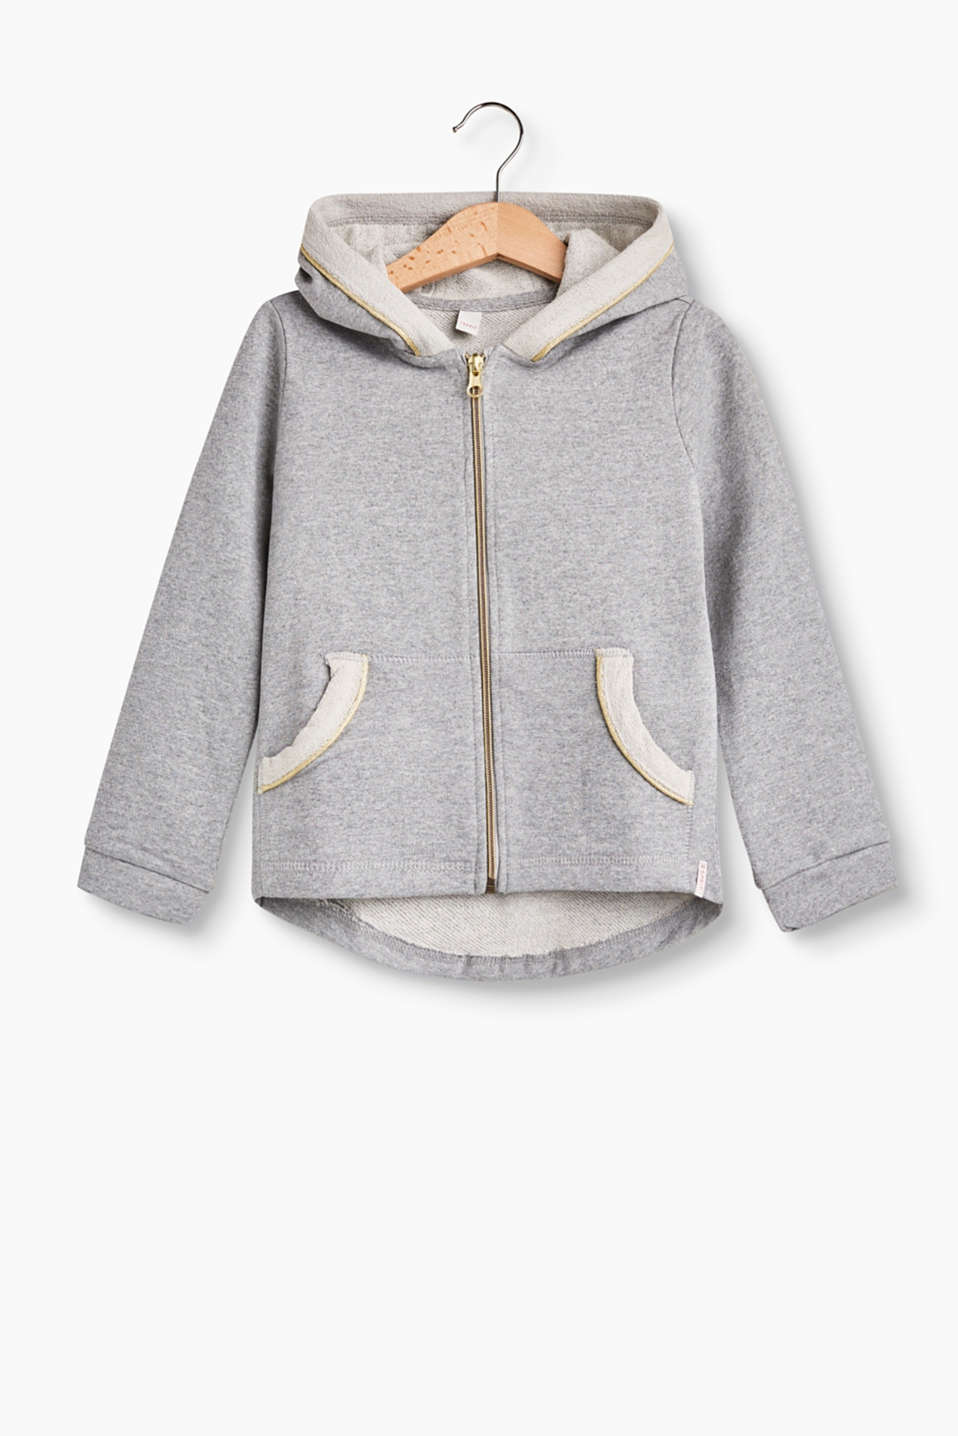 Esprit - Hoodie with a shimmering glitter finish